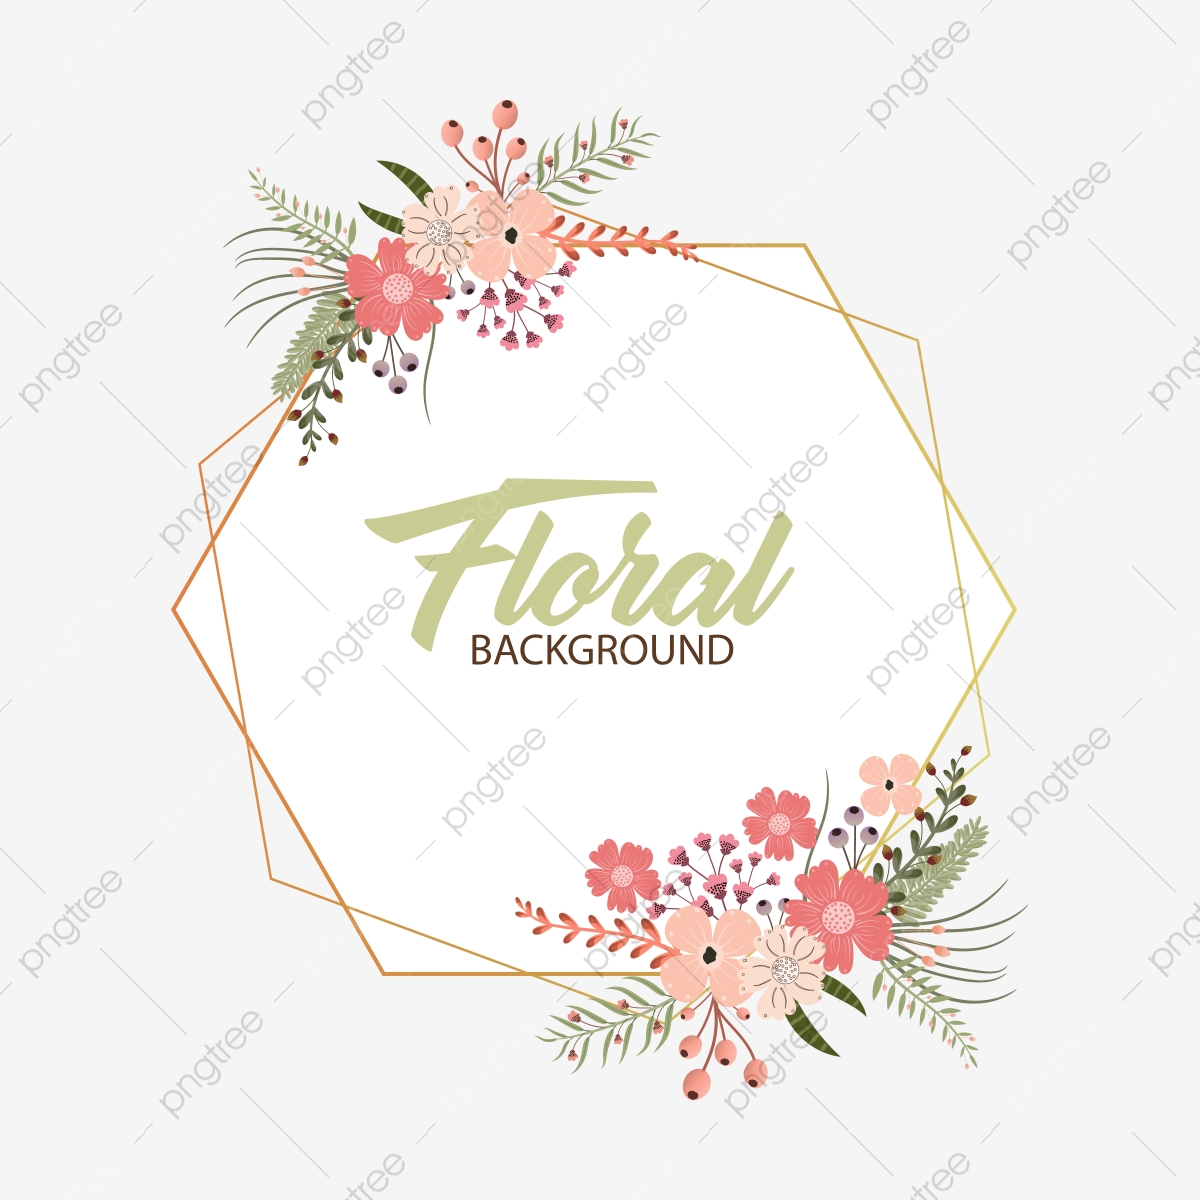 Floral Wreath Vector Wreath With Flowers And Leaves